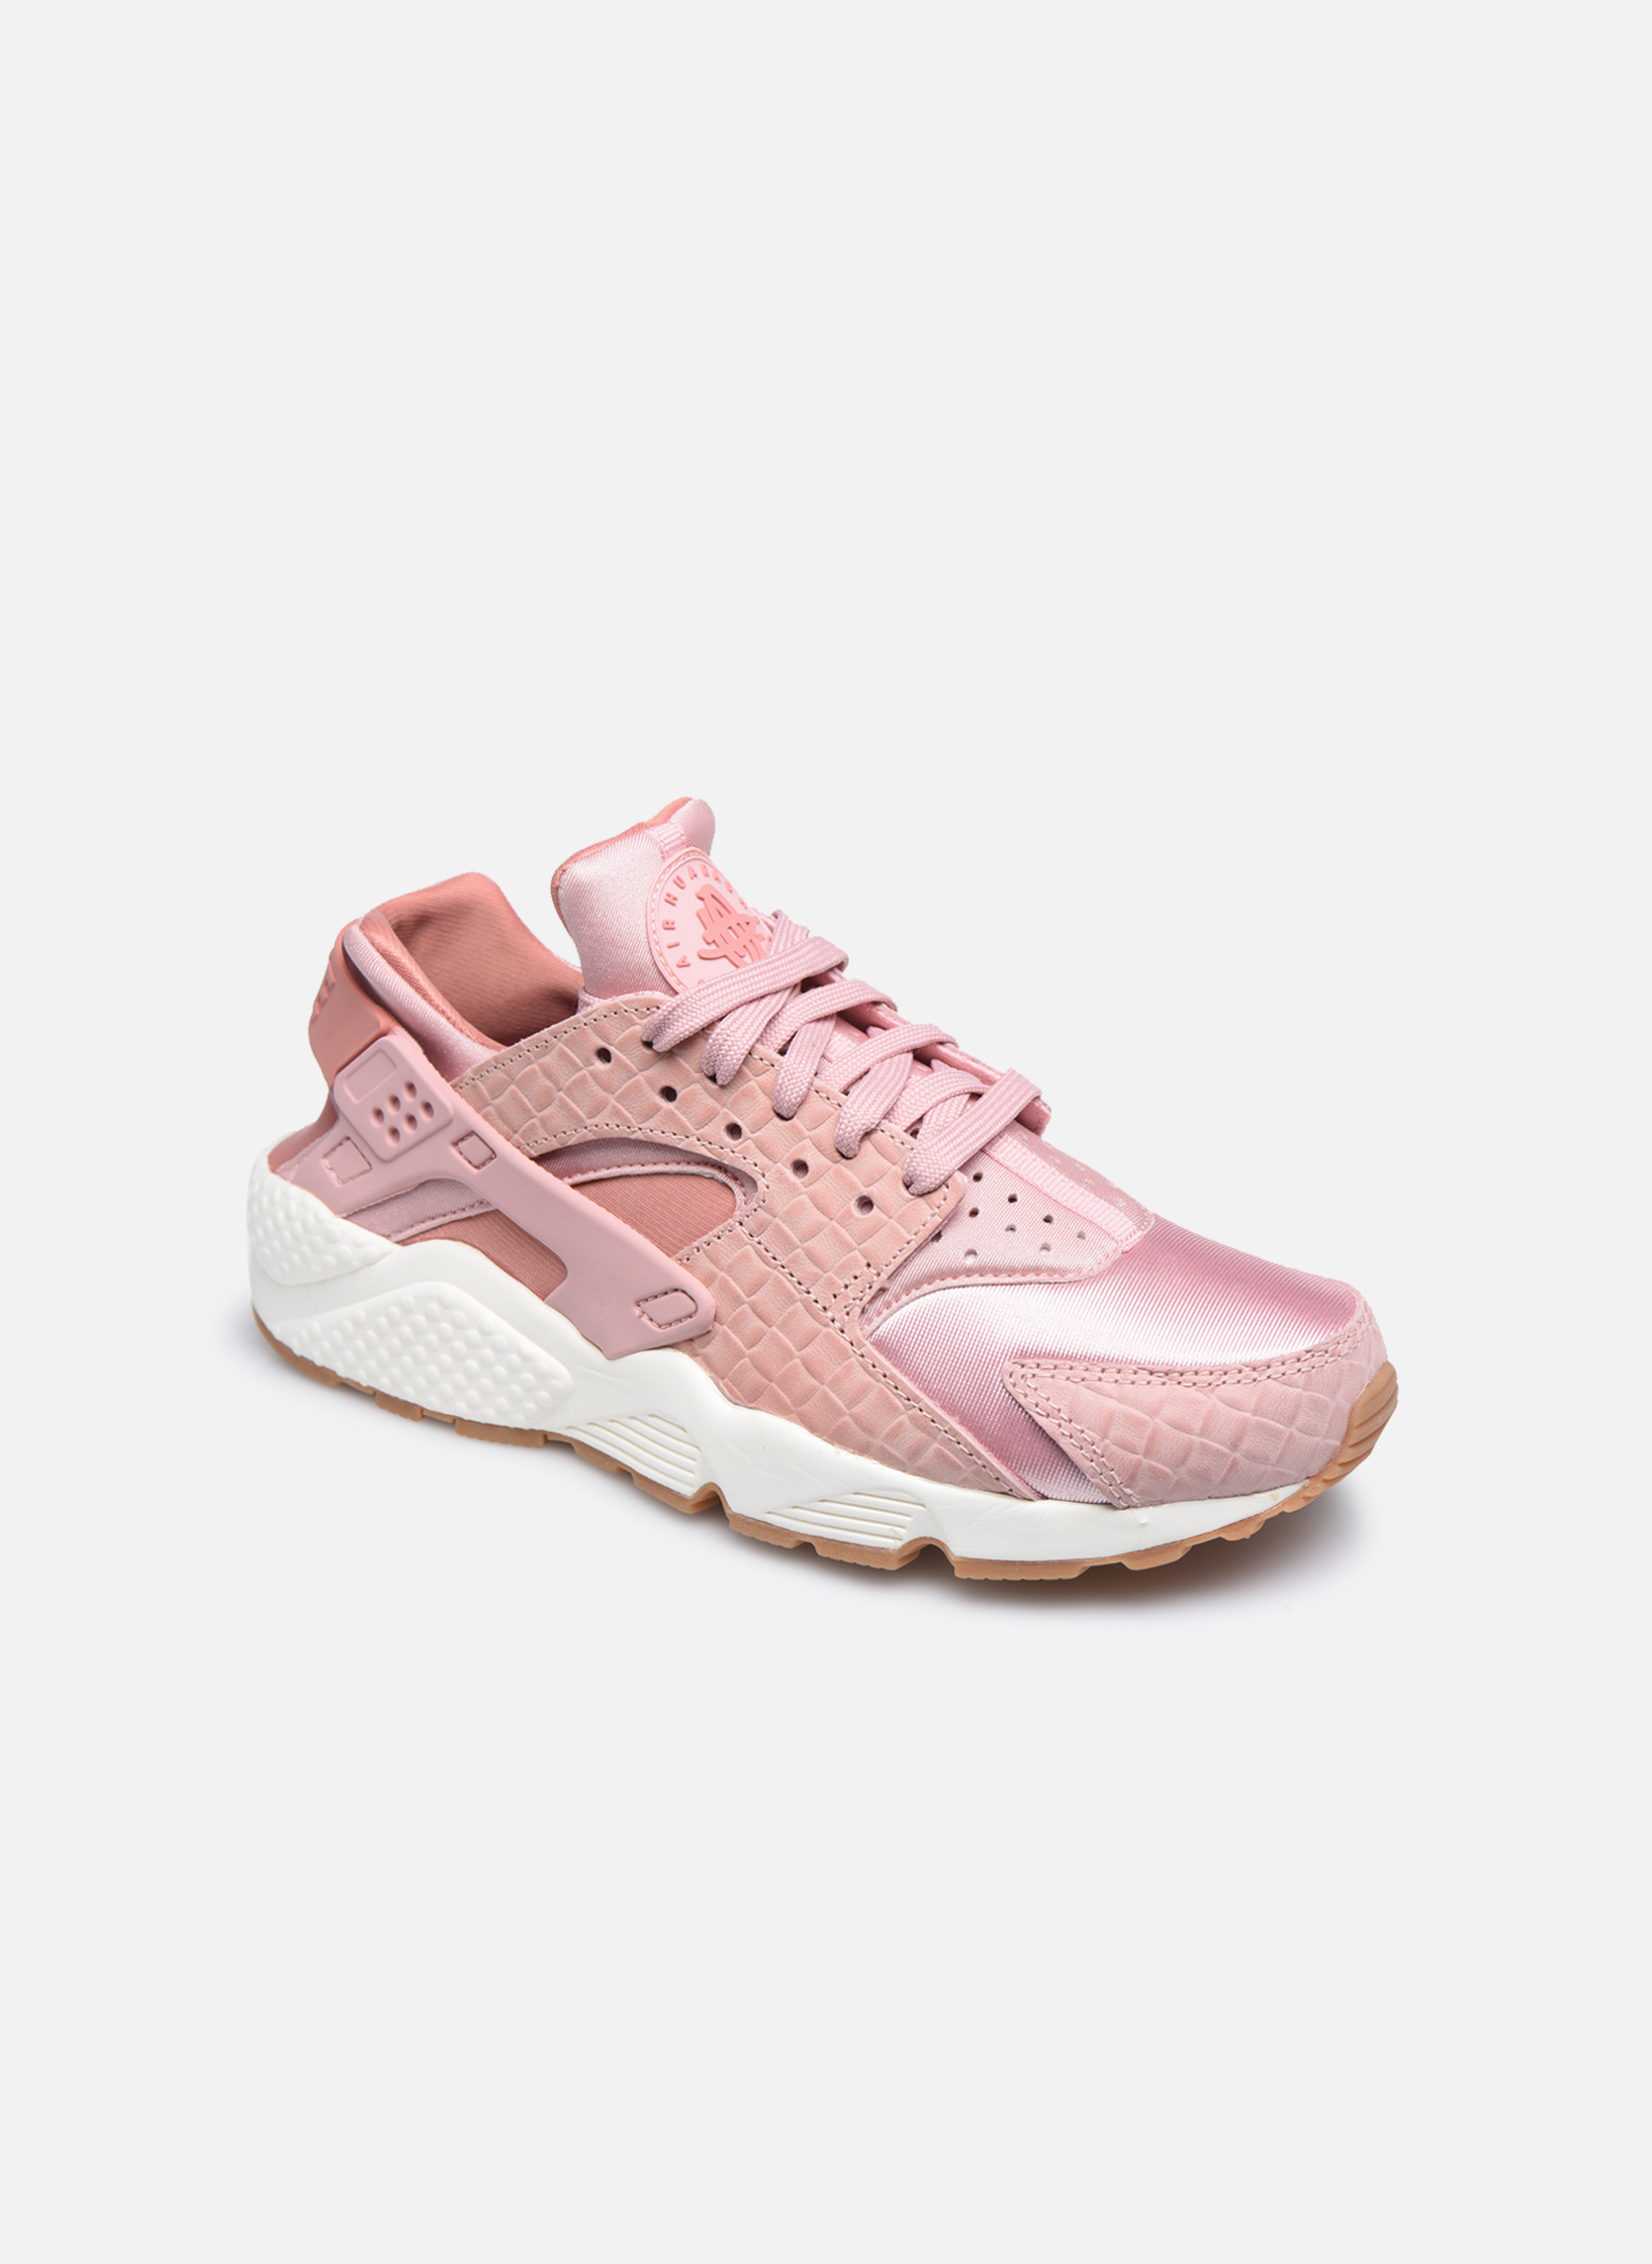 Wmns Air Huarache Run Prm Pink Glaze/Pearl Pink-Sail-Gum Med Brown